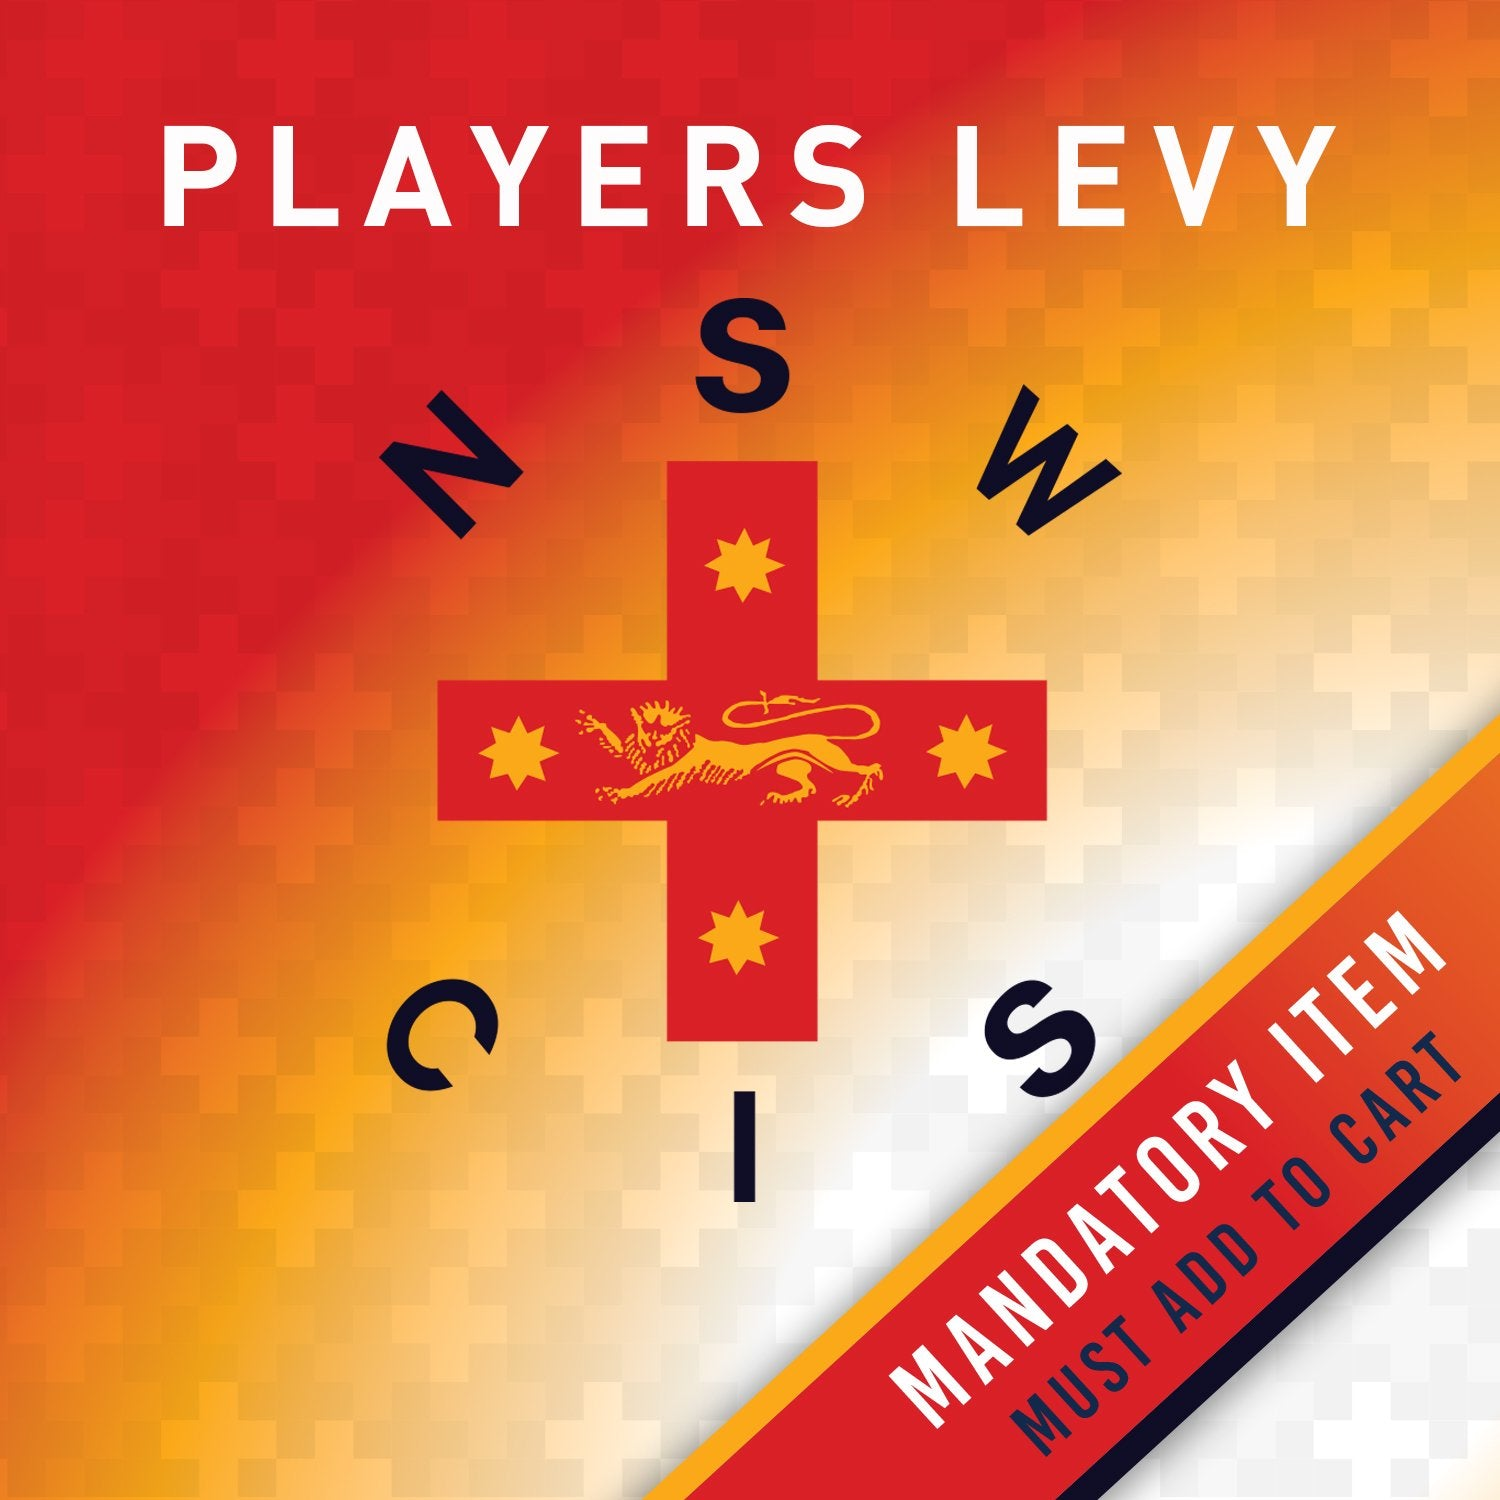 MANDATORY ITEM - PLAYERS LEVY - NSW CIS AFL Secondary Girls 14 year and Under